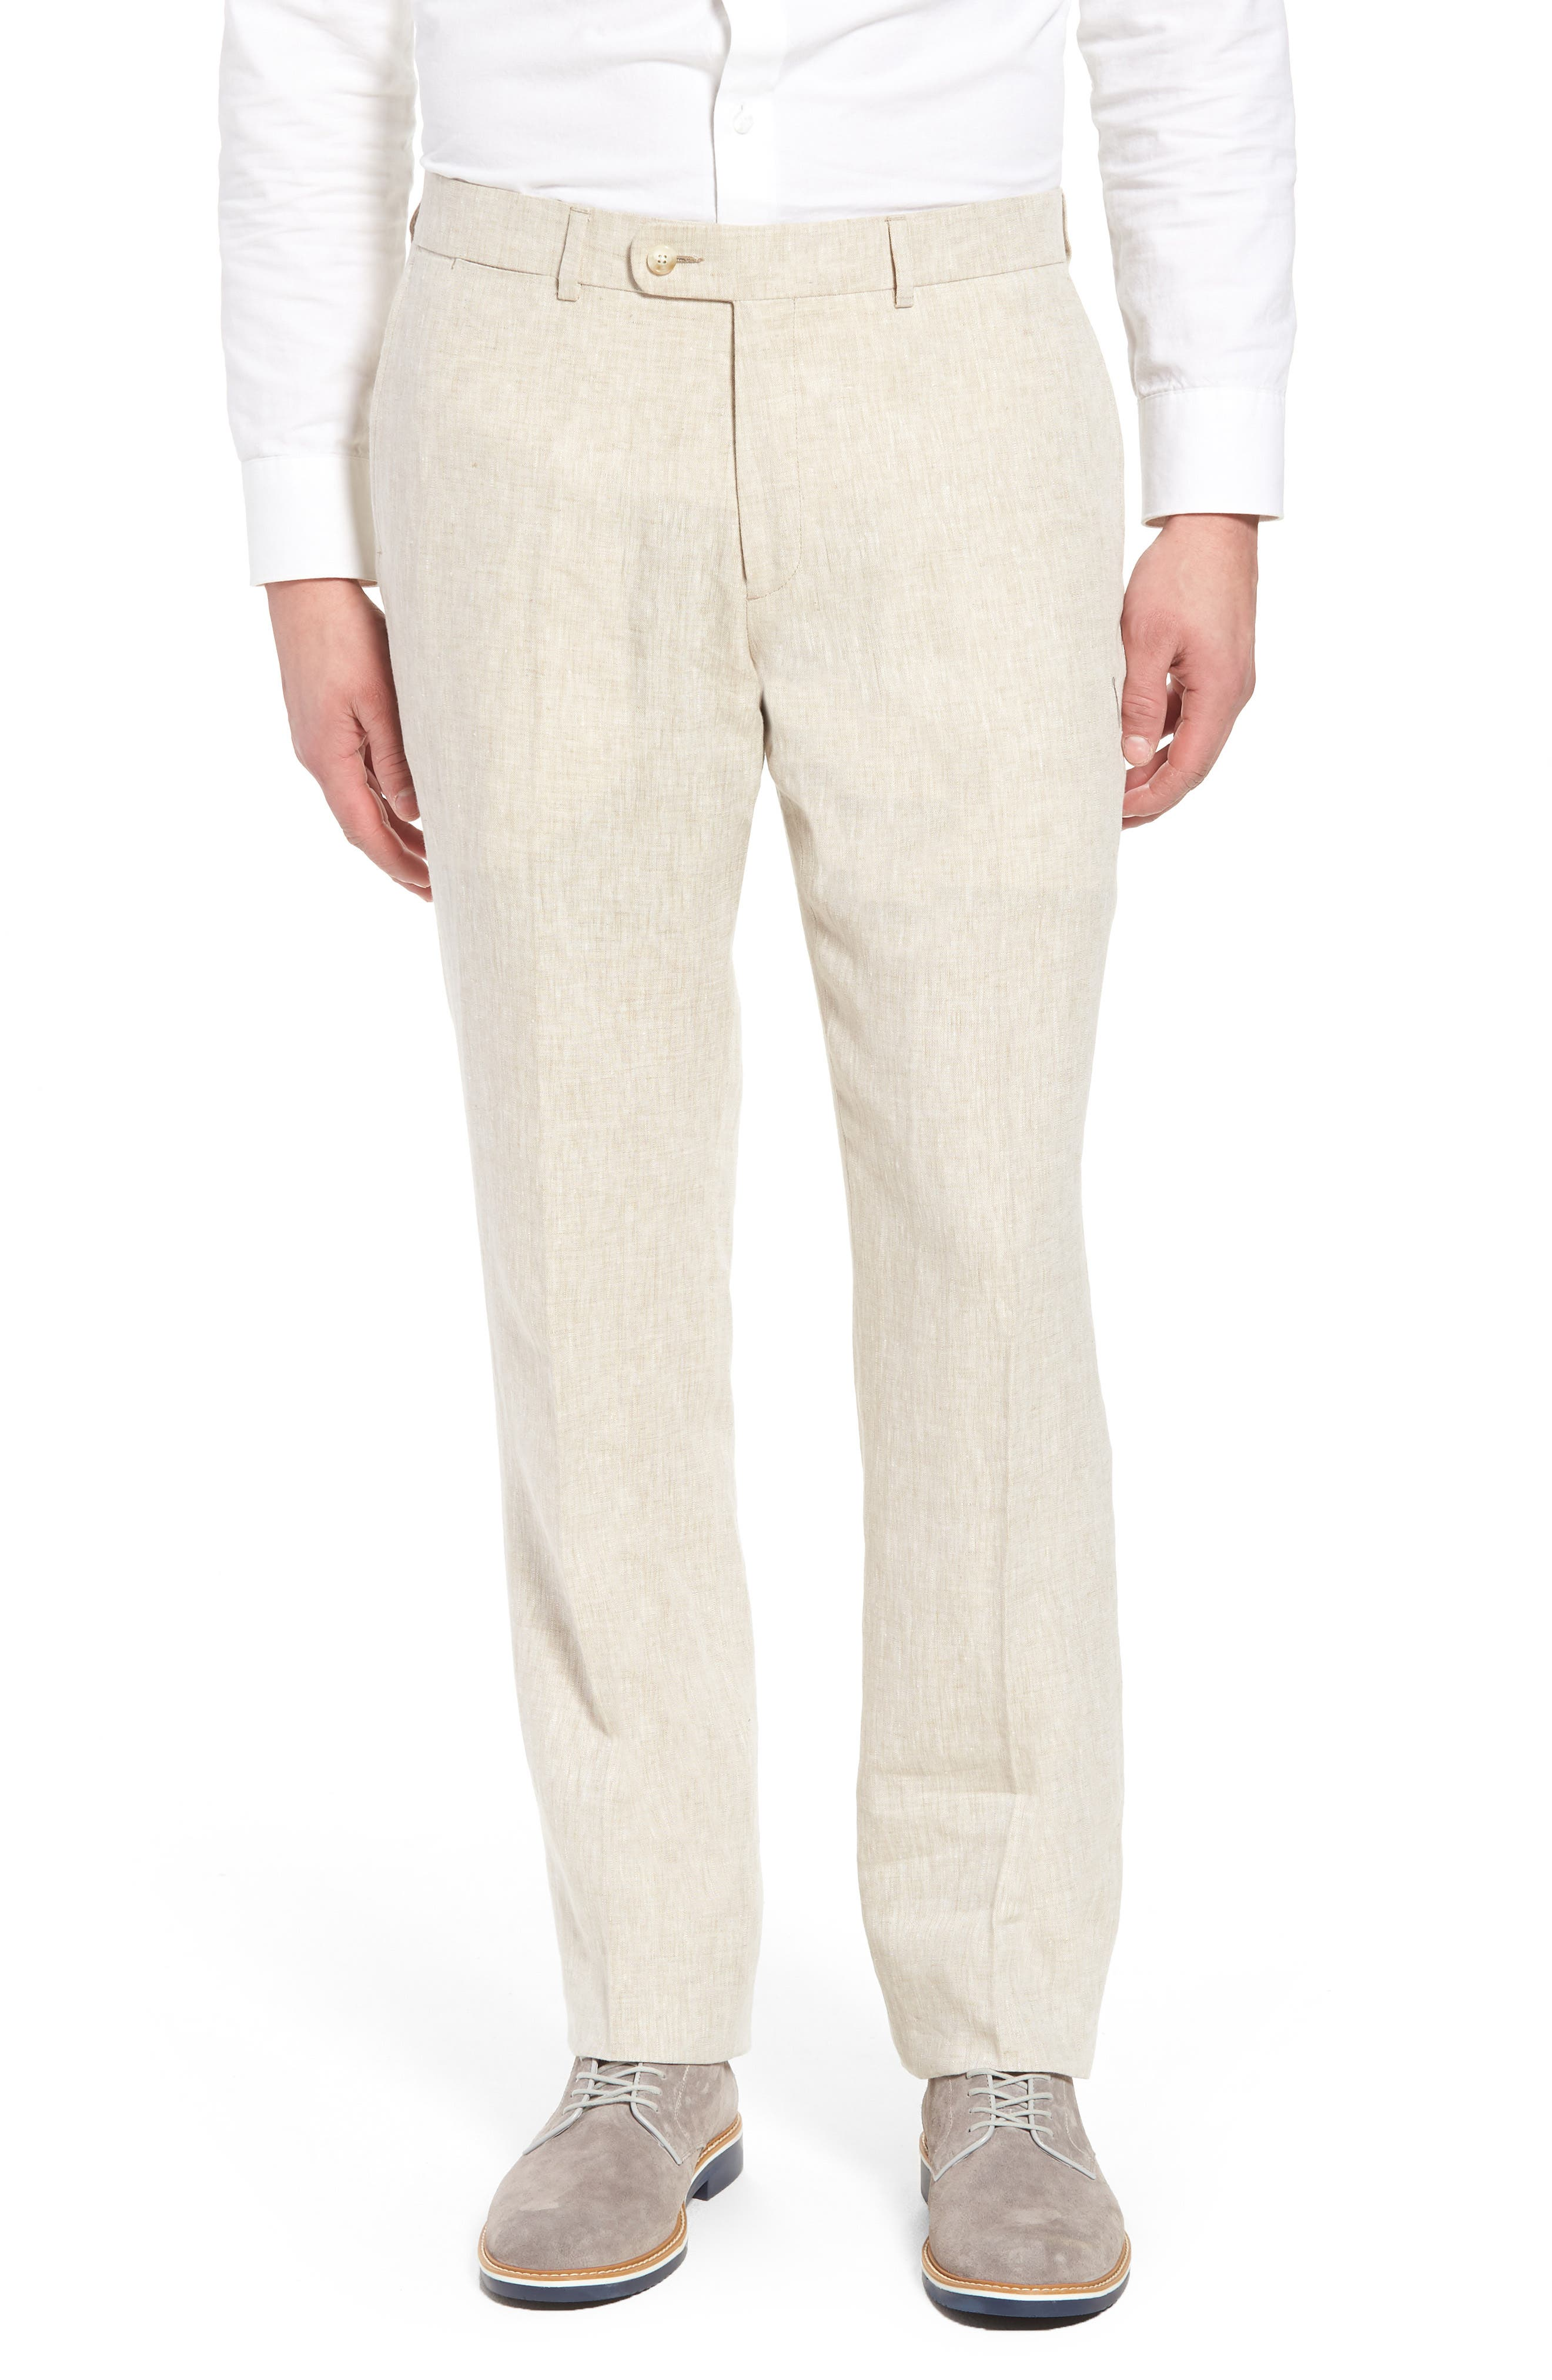 Andrew AIM Flat Front Linen Trousers,                         Main,                         color, 105